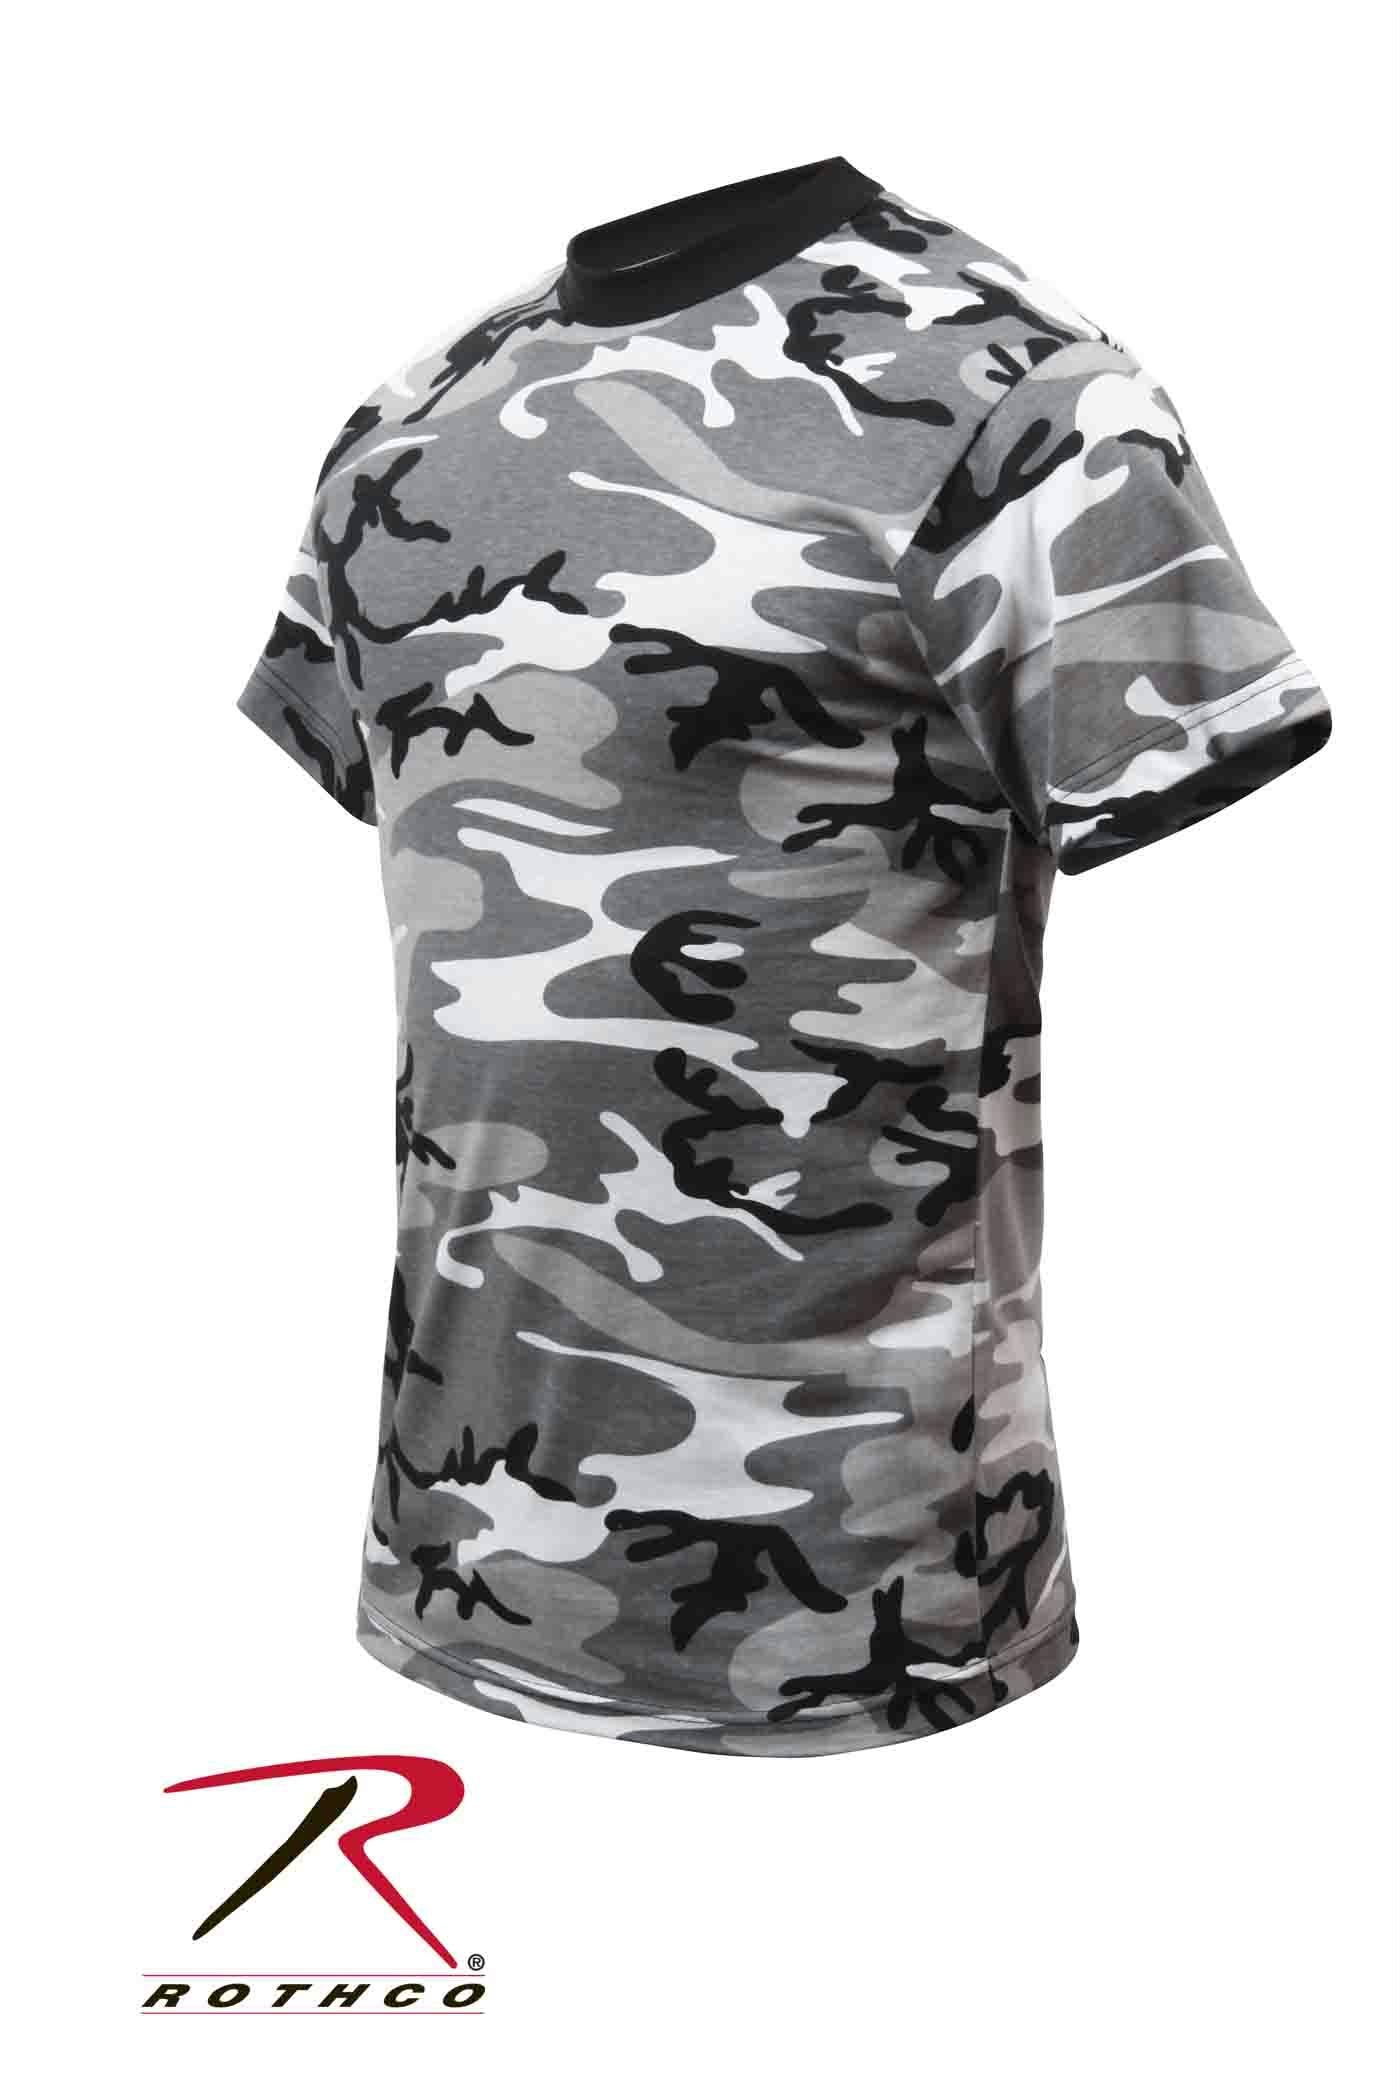 Rothco Kids Camo T-Shirts - City Camo / XS